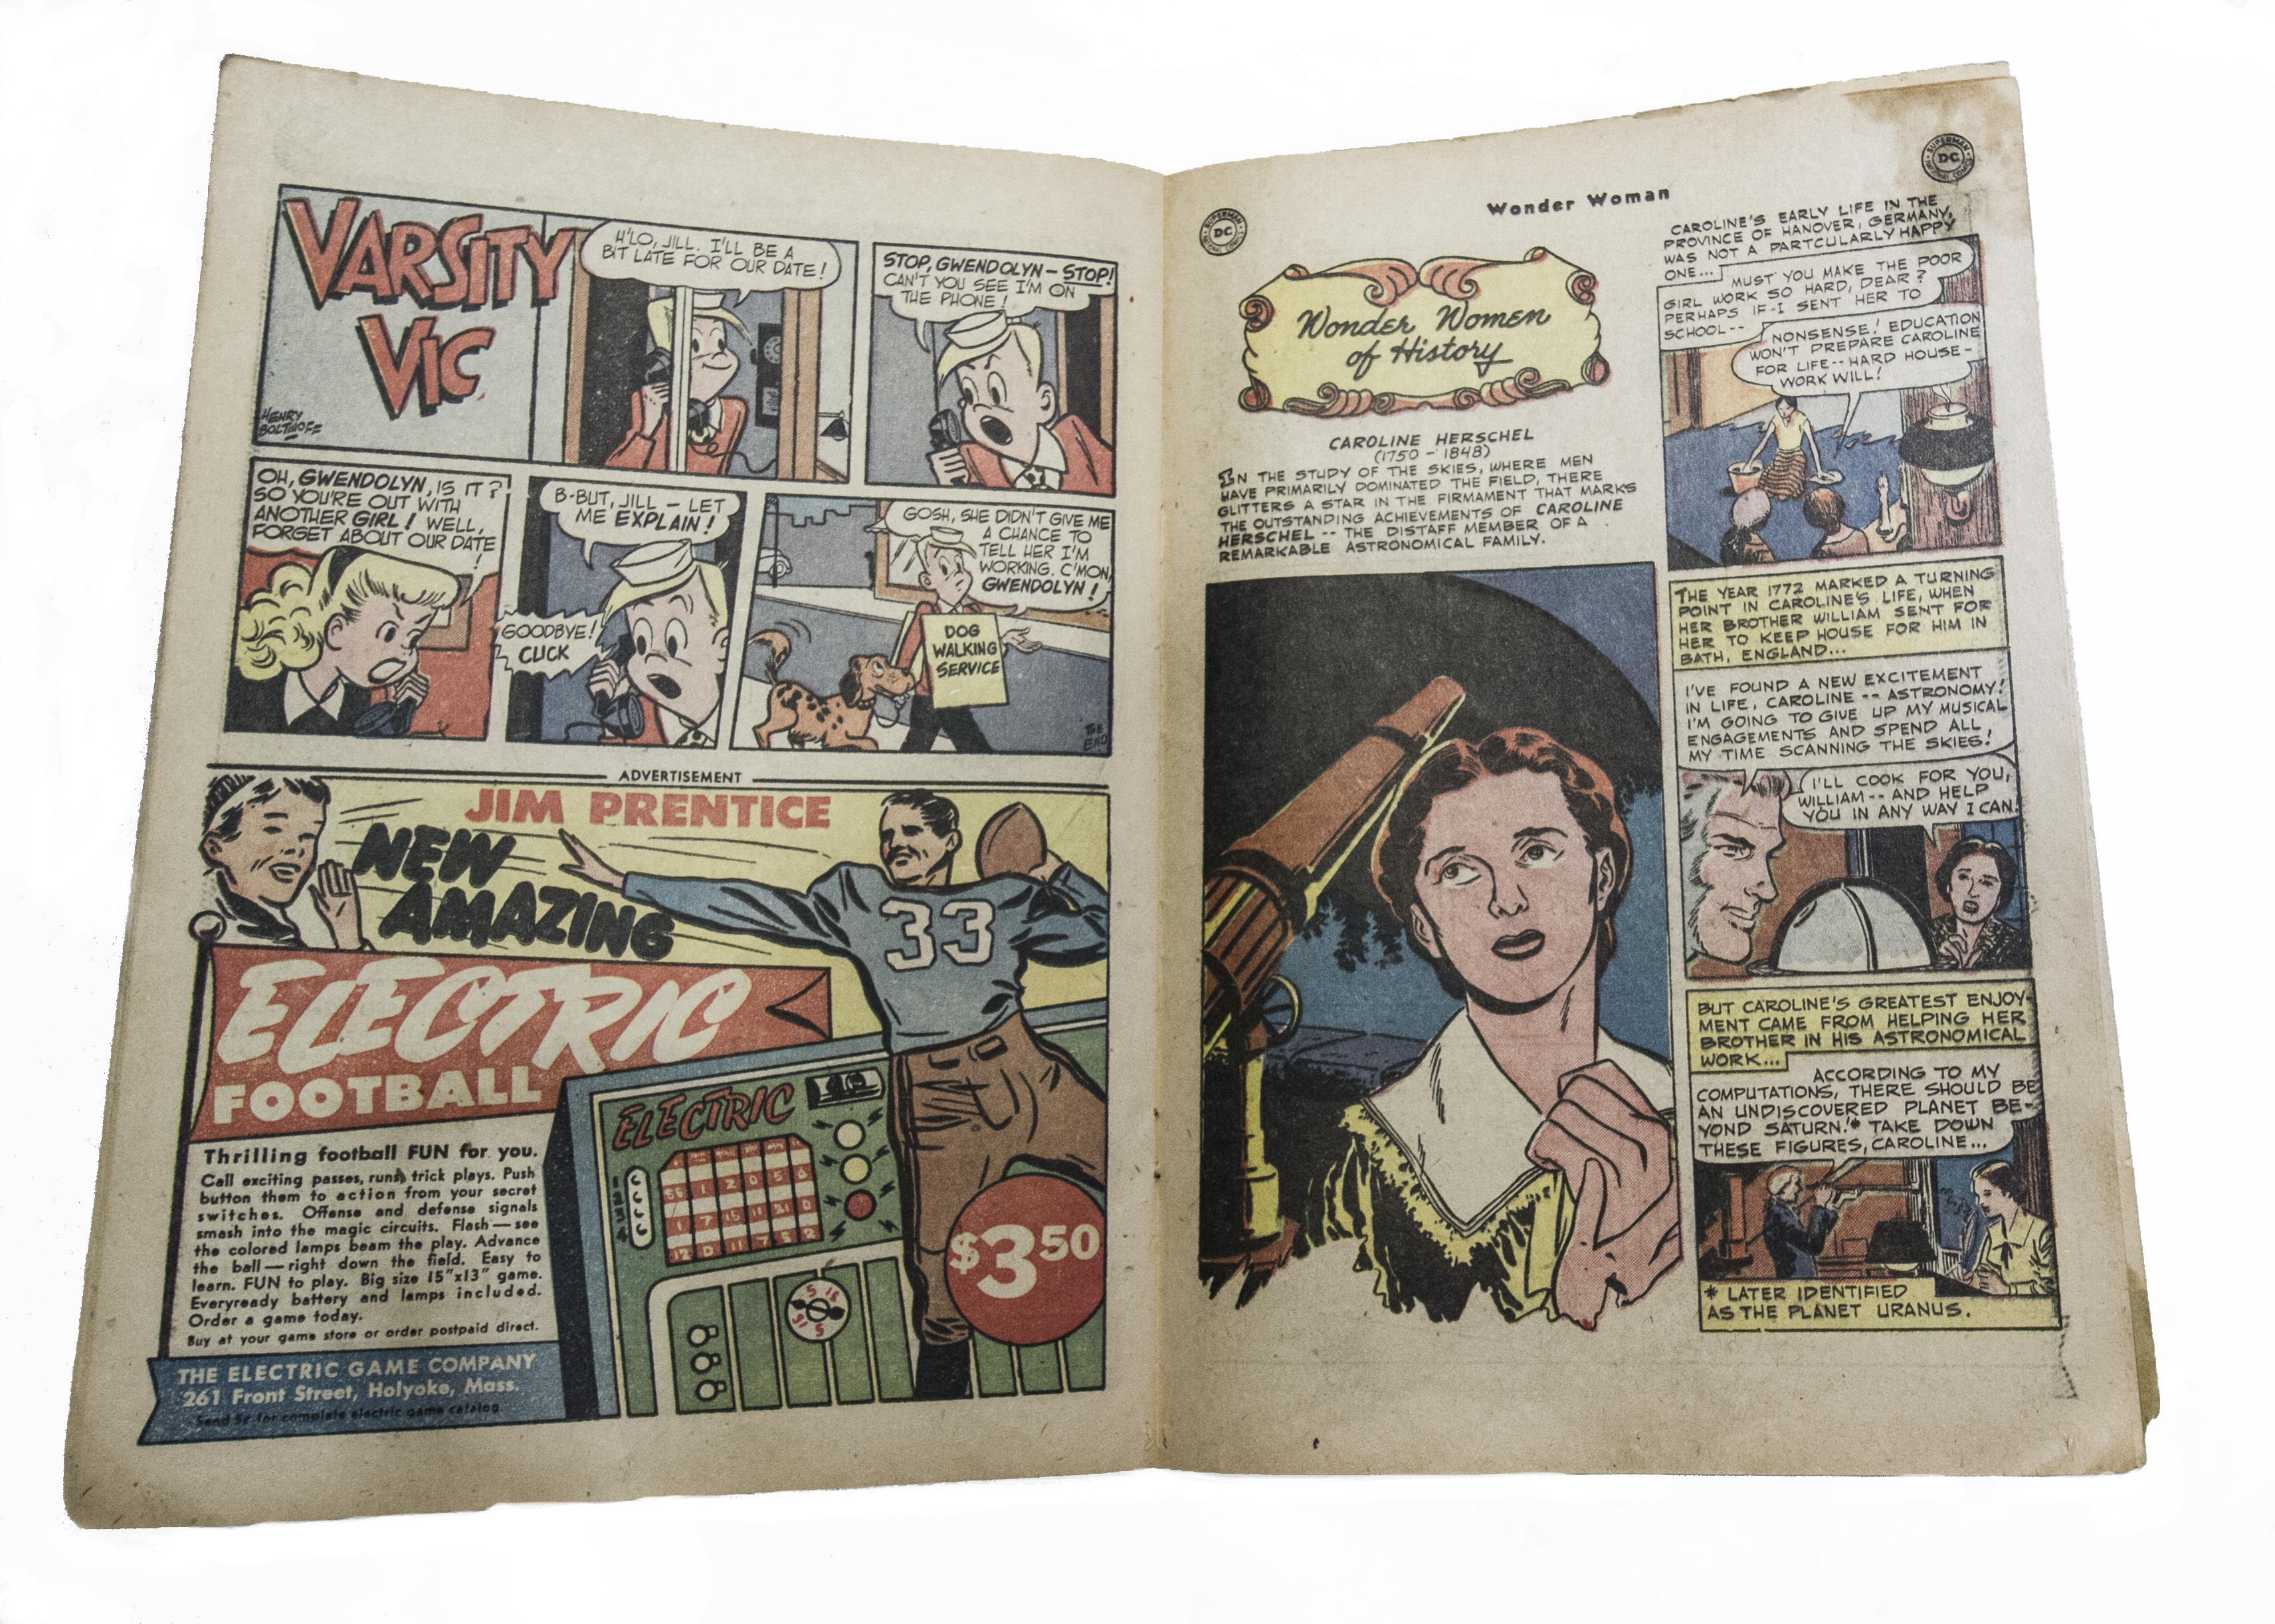 82a3e0ba13b3 Our current exhibition  Wonder Women of Science  features a comic book  about Caroline Herschel